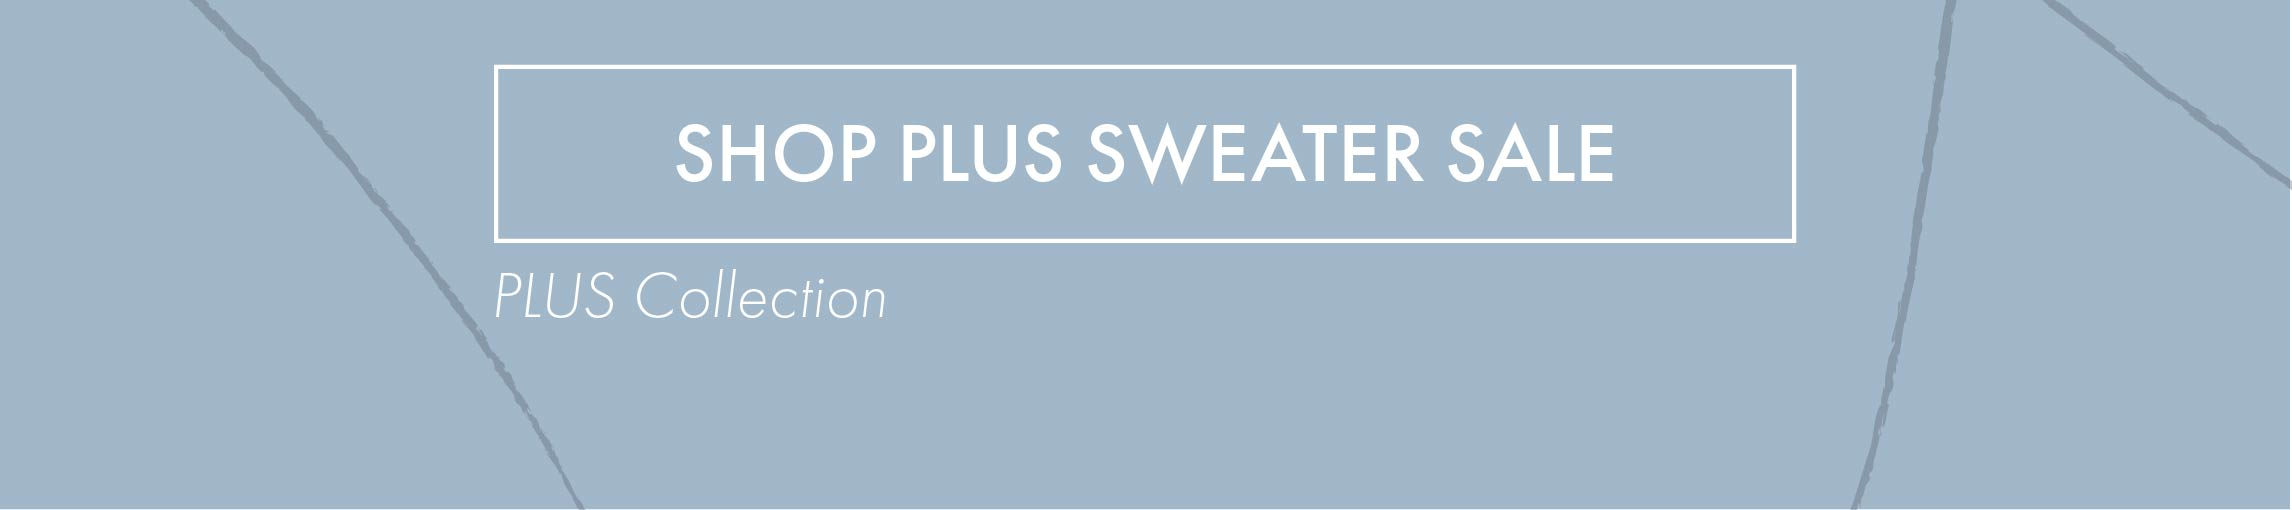 25% OFF Sweater Sale (Plus)